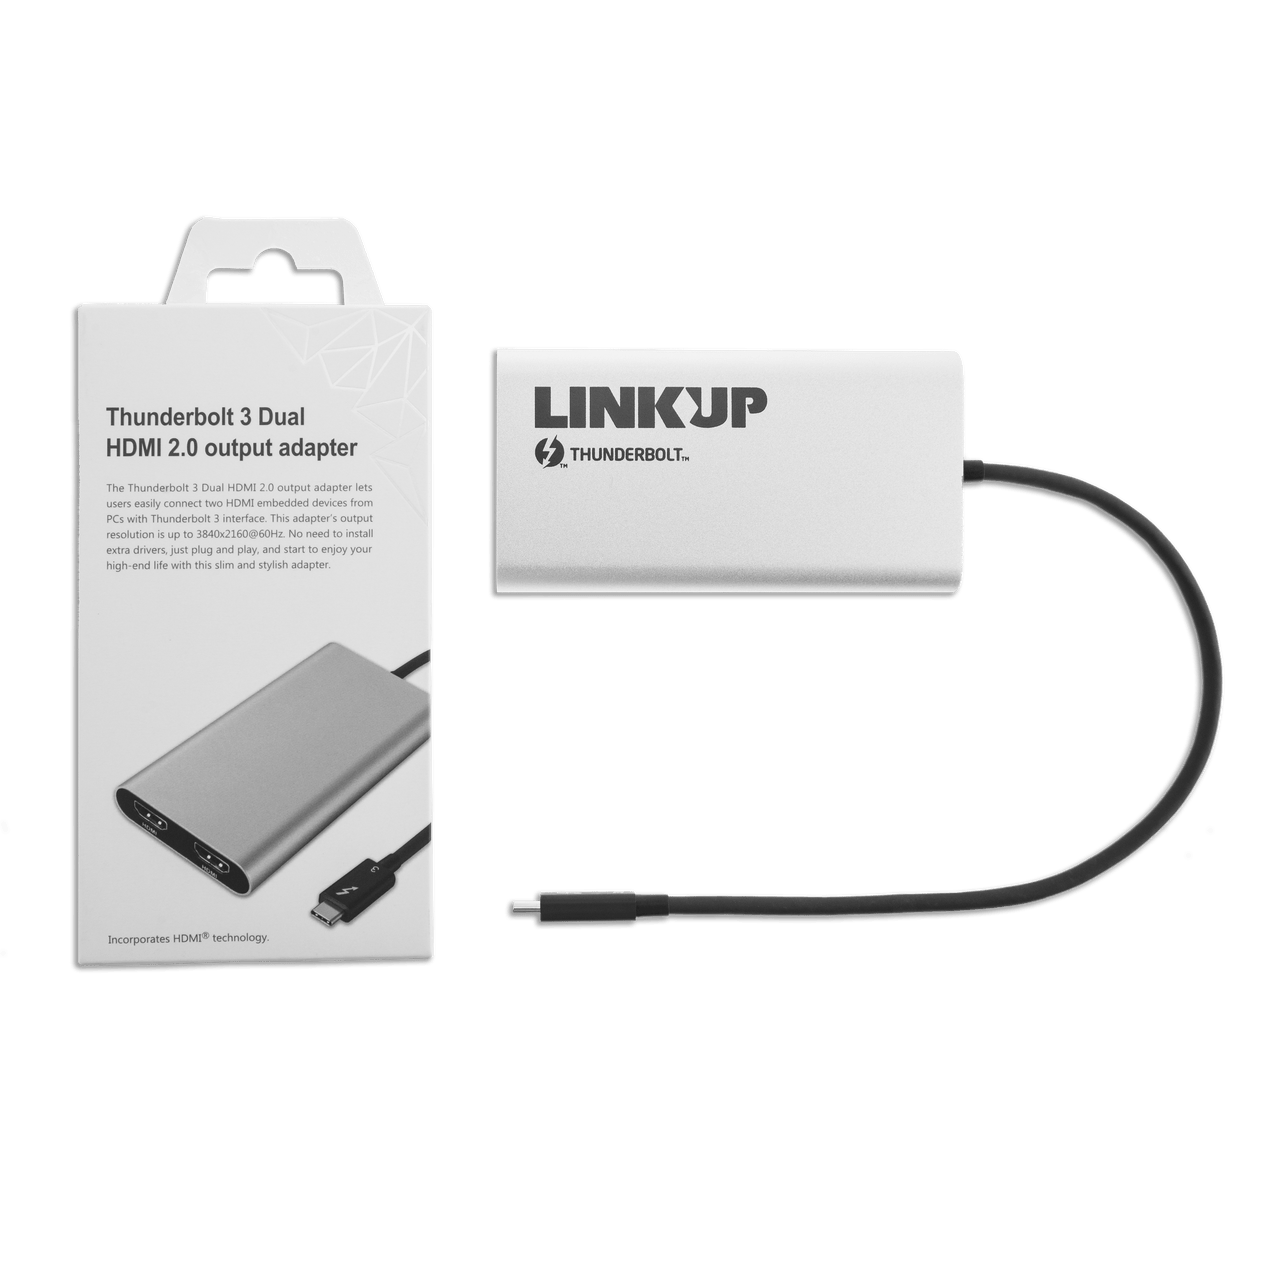 [Certified] LINKUP 2019 Thunderbolt 3 to Dual HDMI 2.0 Ultra 4K 60Hz Adapter for Mac Windows | TB3 Aluminum Case | Not Compatible with USB-C Ports ...